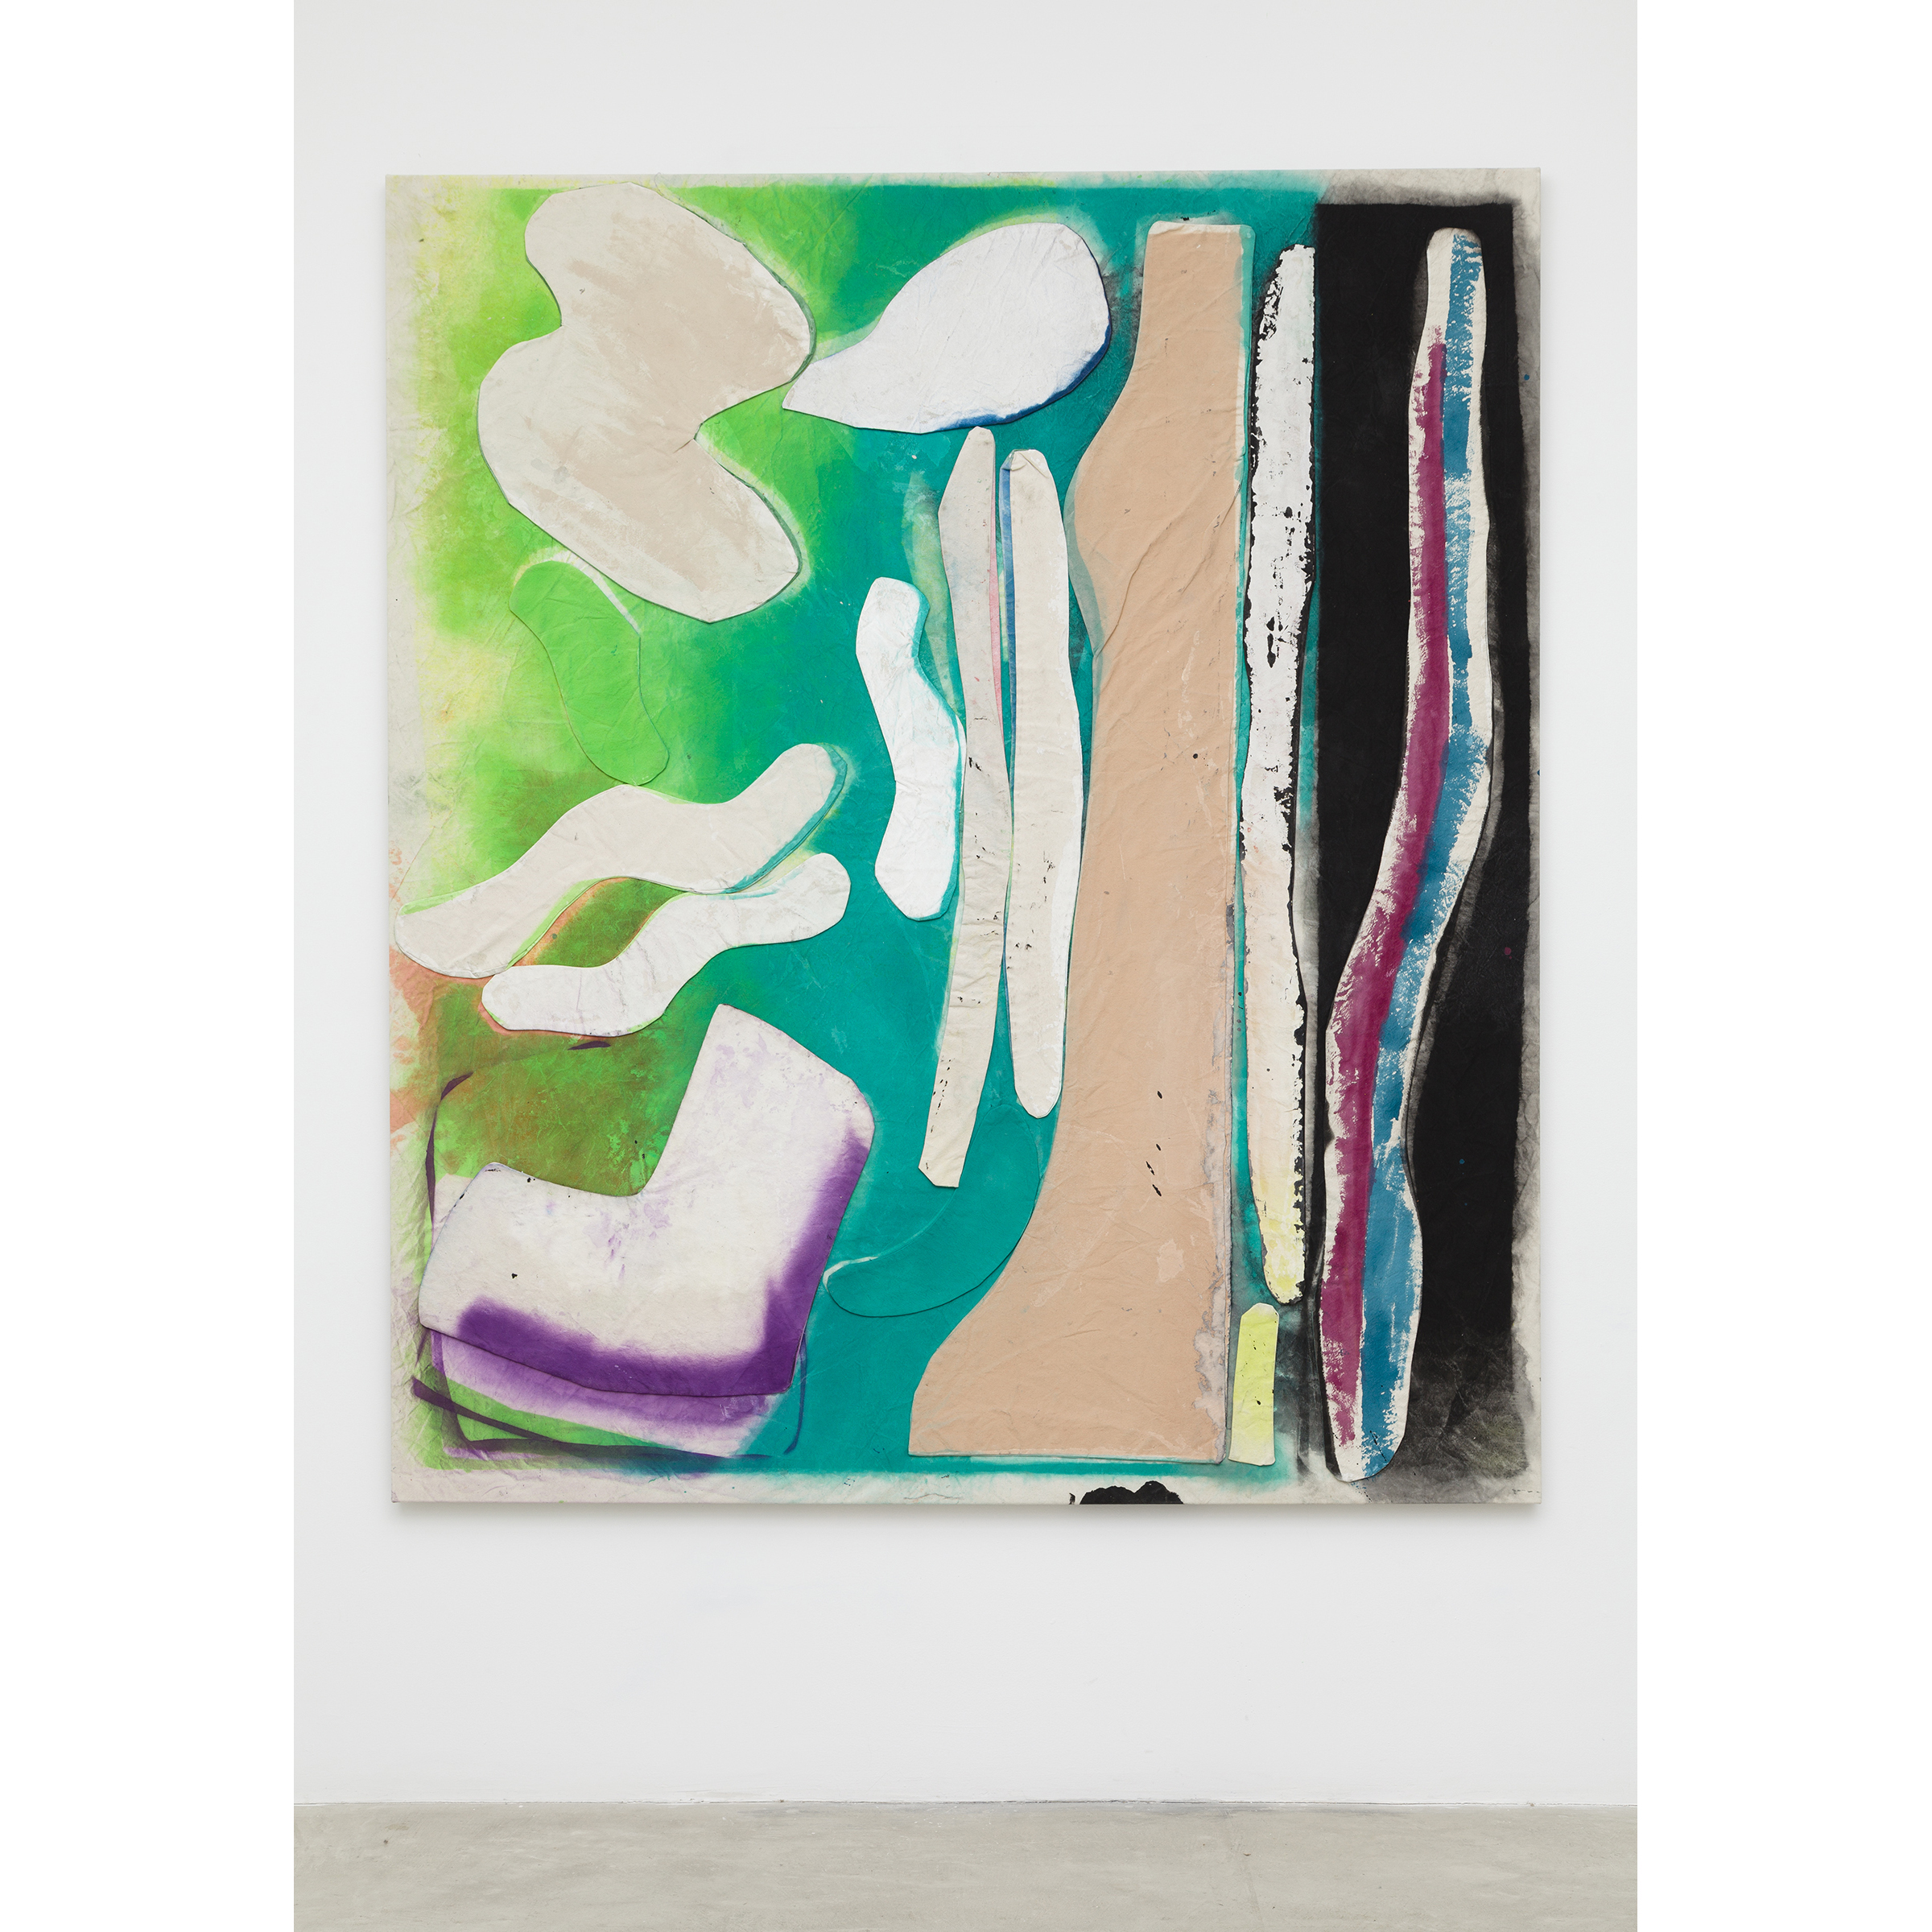 Jess Fuller, Flesh Blue with Green , 2014,acrylic, fabric dye and gesso on canvas,82 x 71 in